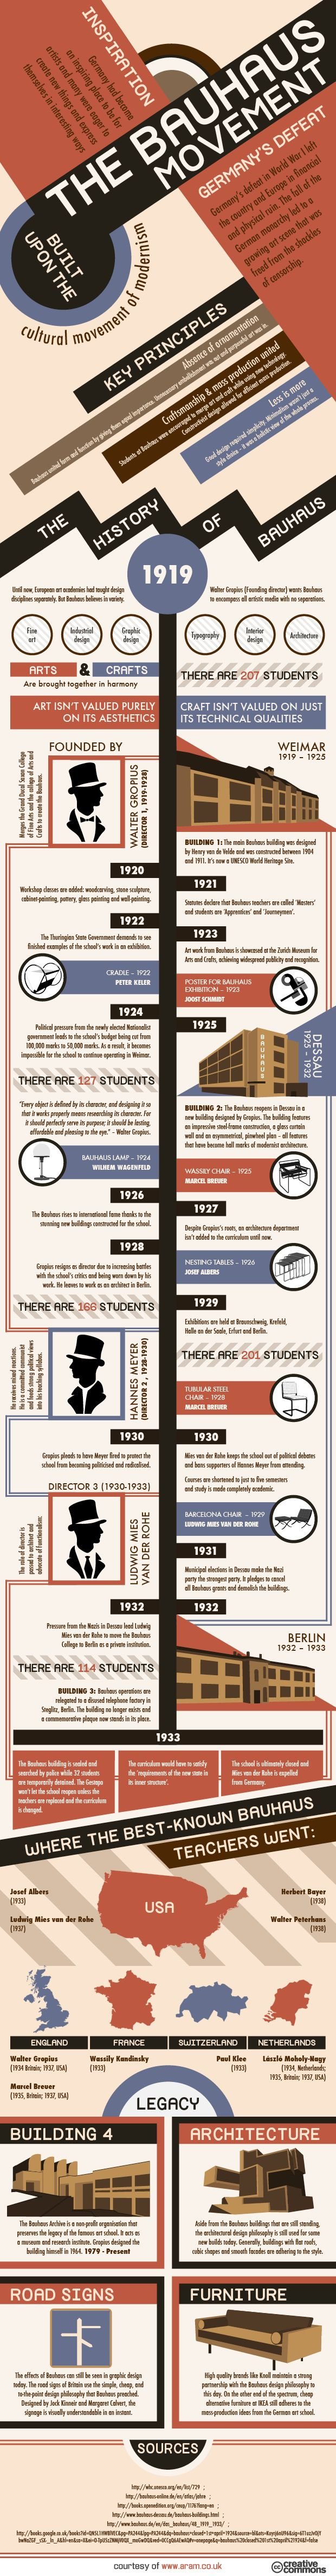 Infographic: The Bauhaus Movement and the School that Started it All | ArchDaily | www.aram.co.uk